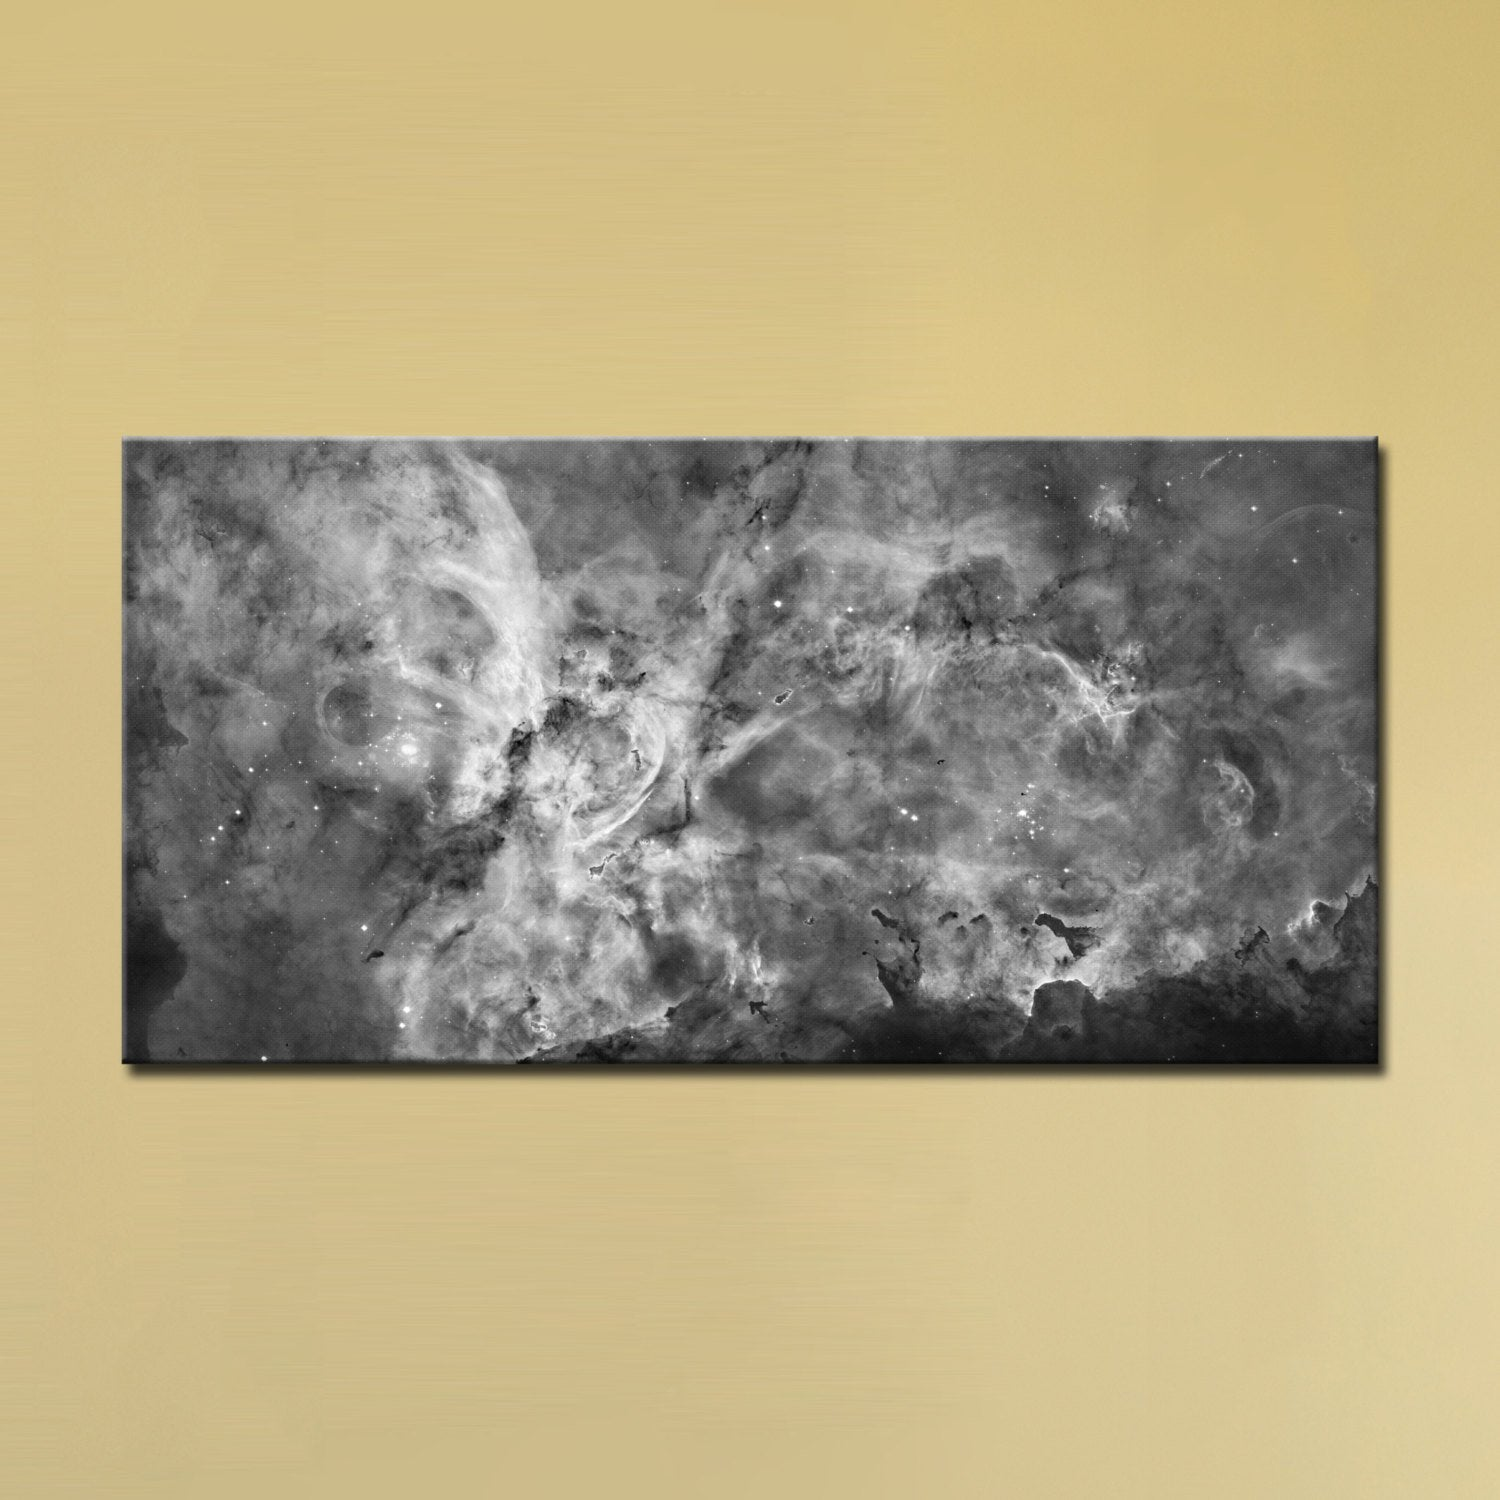 The Carina Nebula, Star Birth in the Extreme (Grayscale) (12″ x 24″) – Canvas Wrap Print